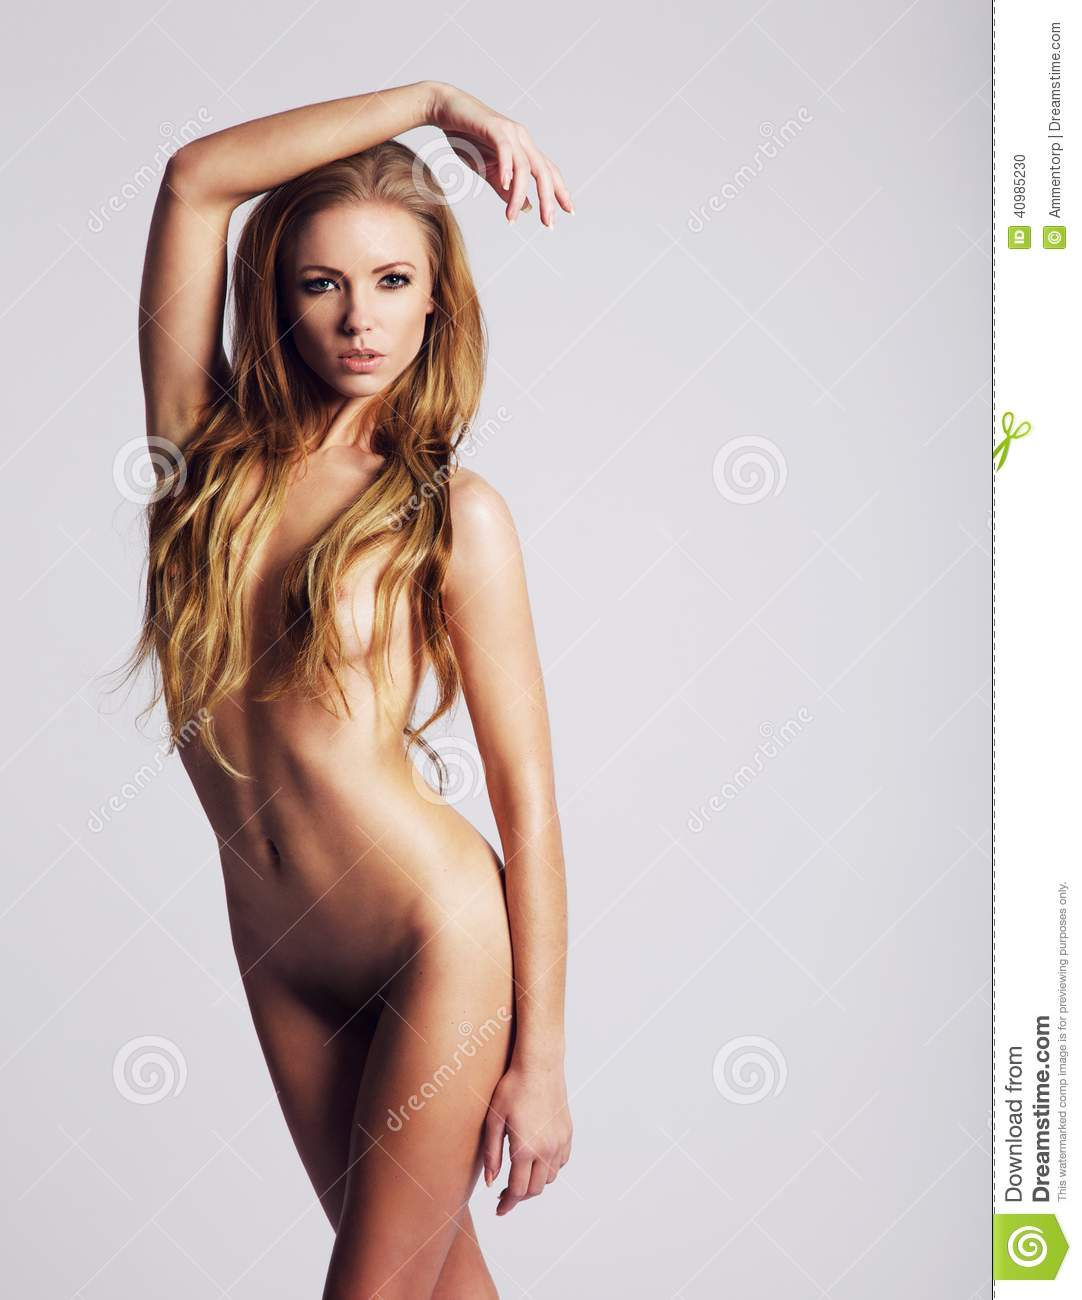 Model backdrops Nude